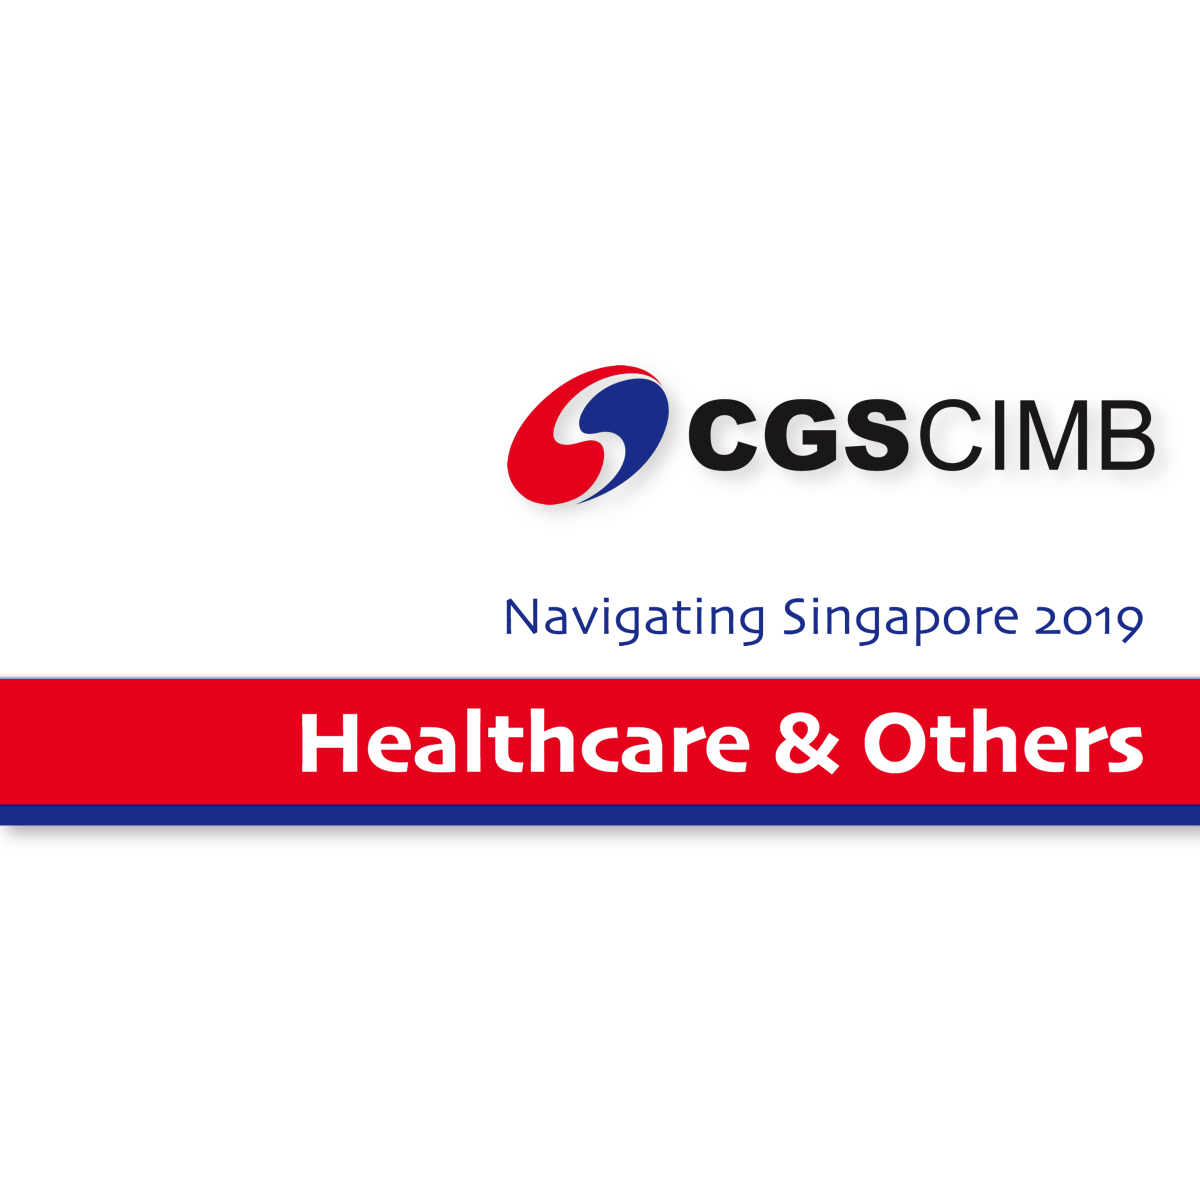 CGSCIMB Research Navigating Singapore 2019 Healthcare & Others | SGinvestors.io